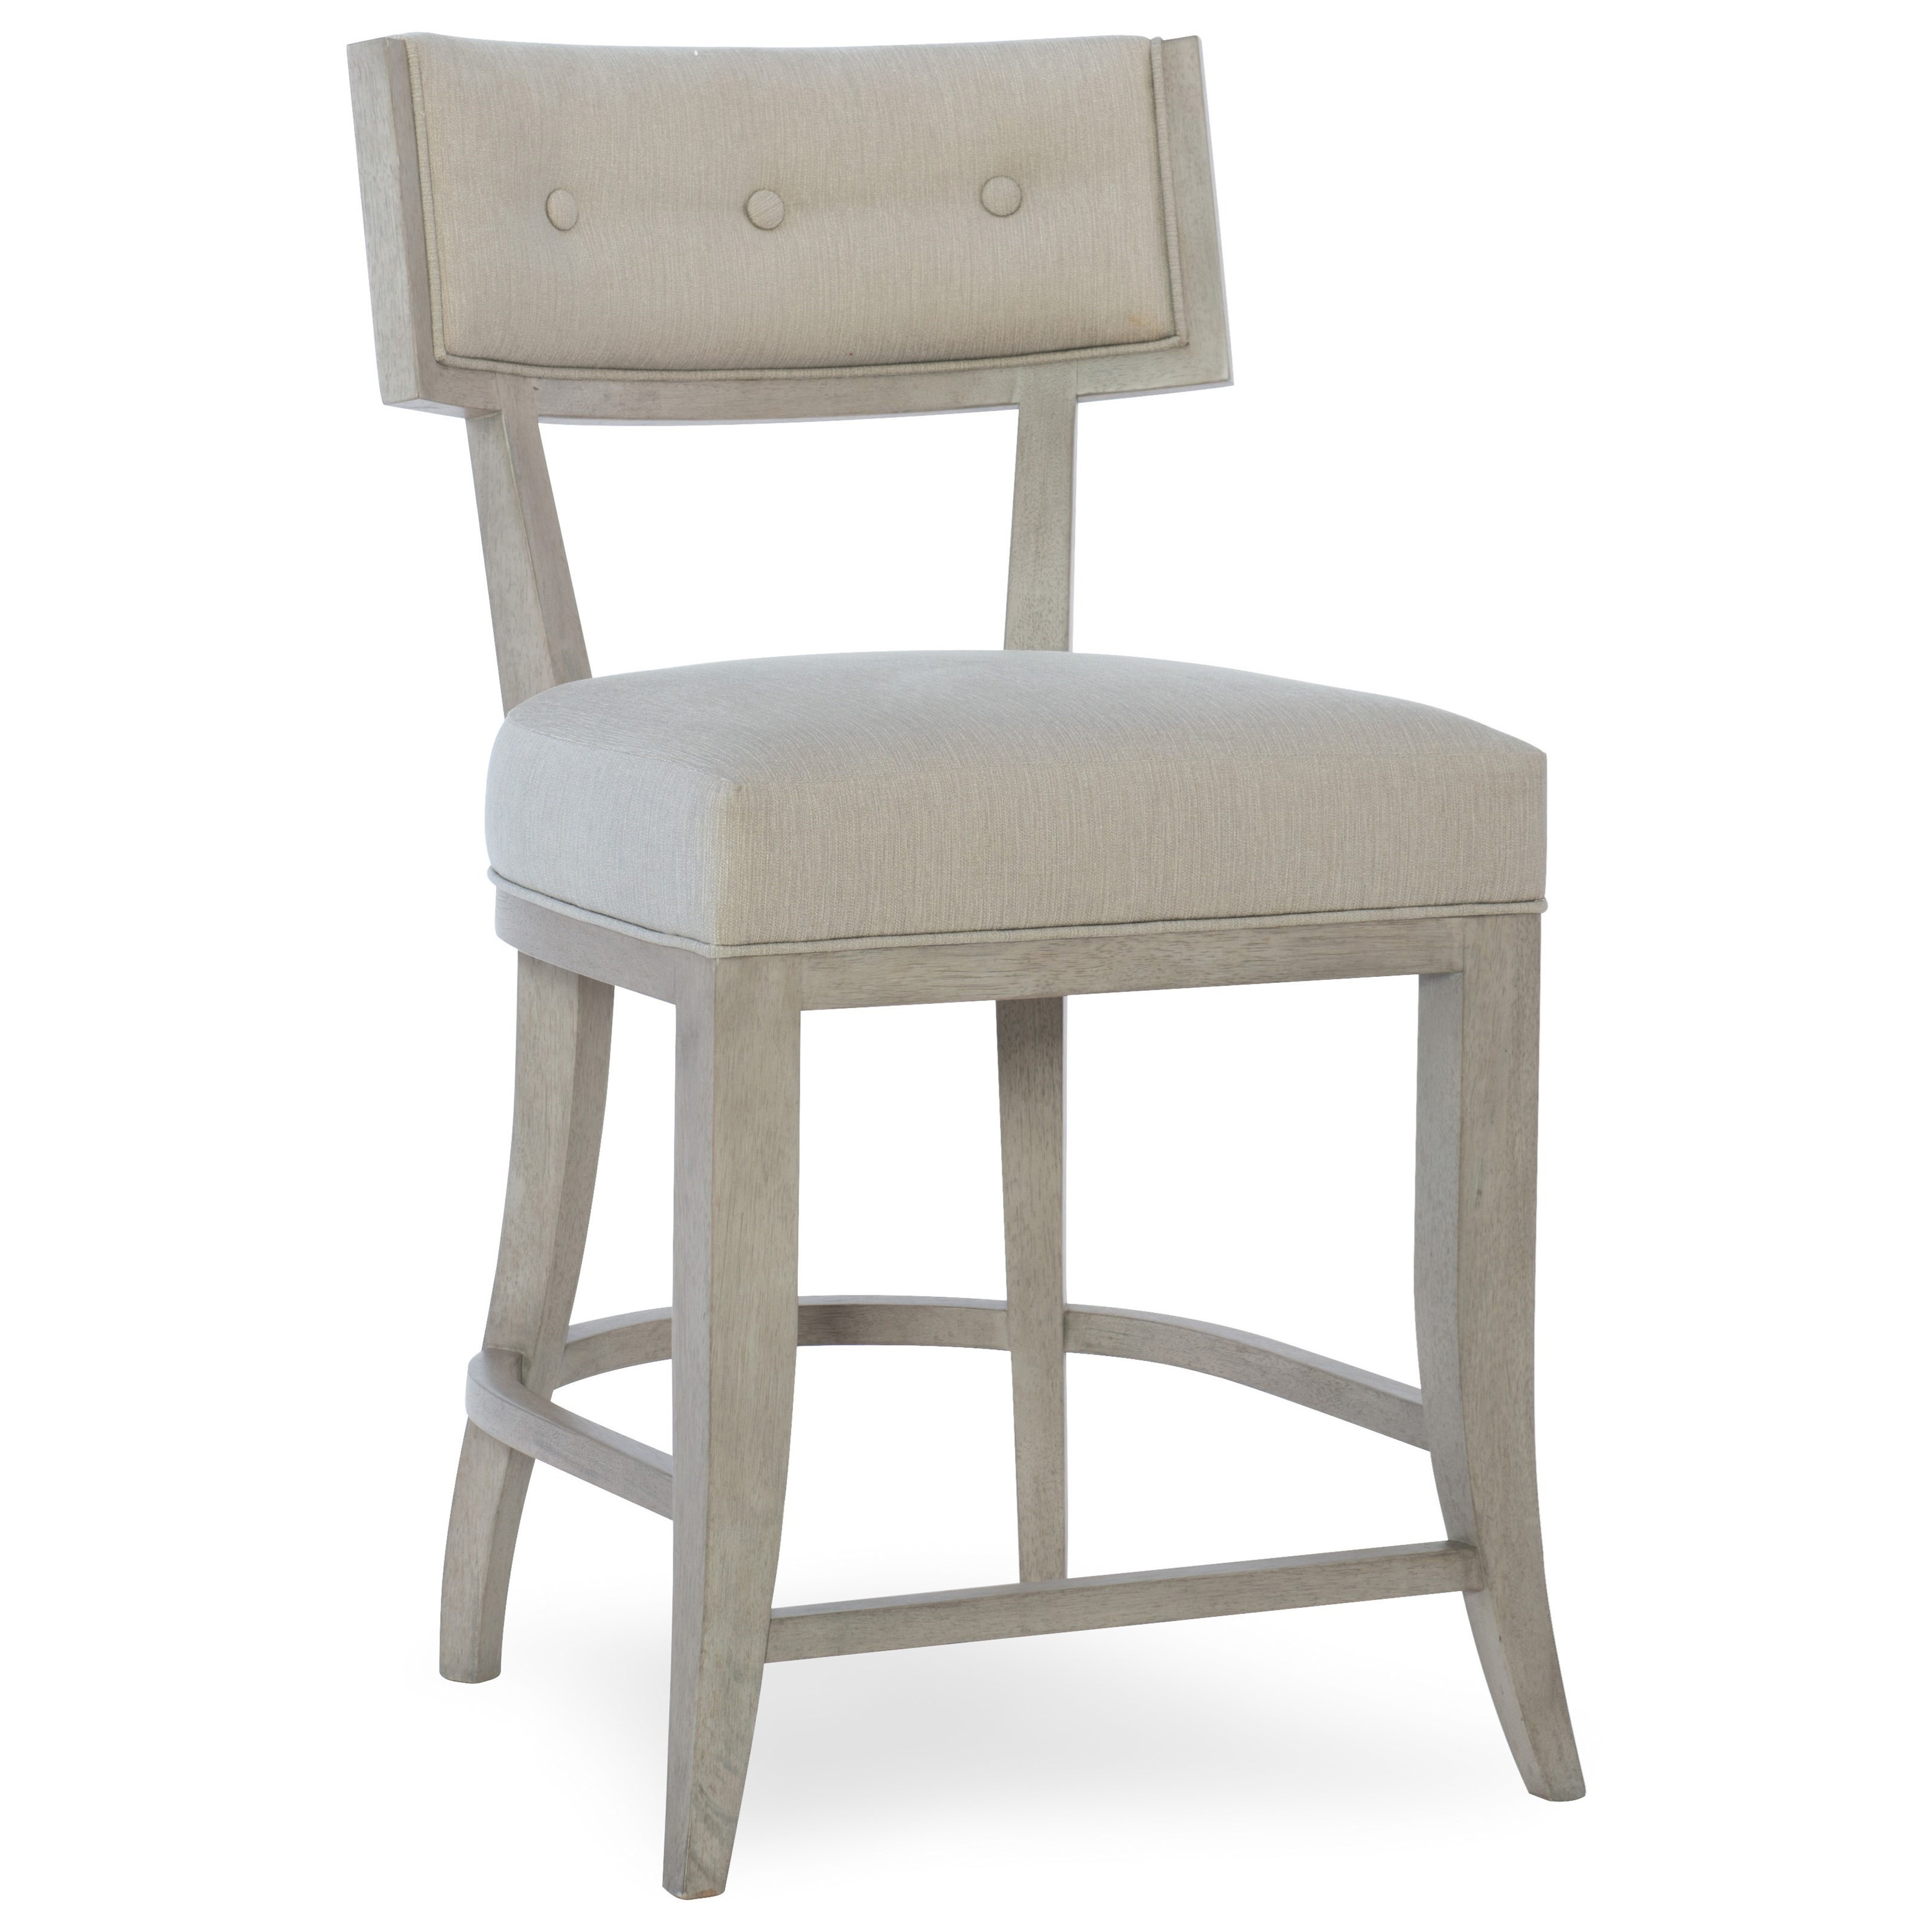 Hooker Furniture Elixir Klismos Upholstered Counter Stool